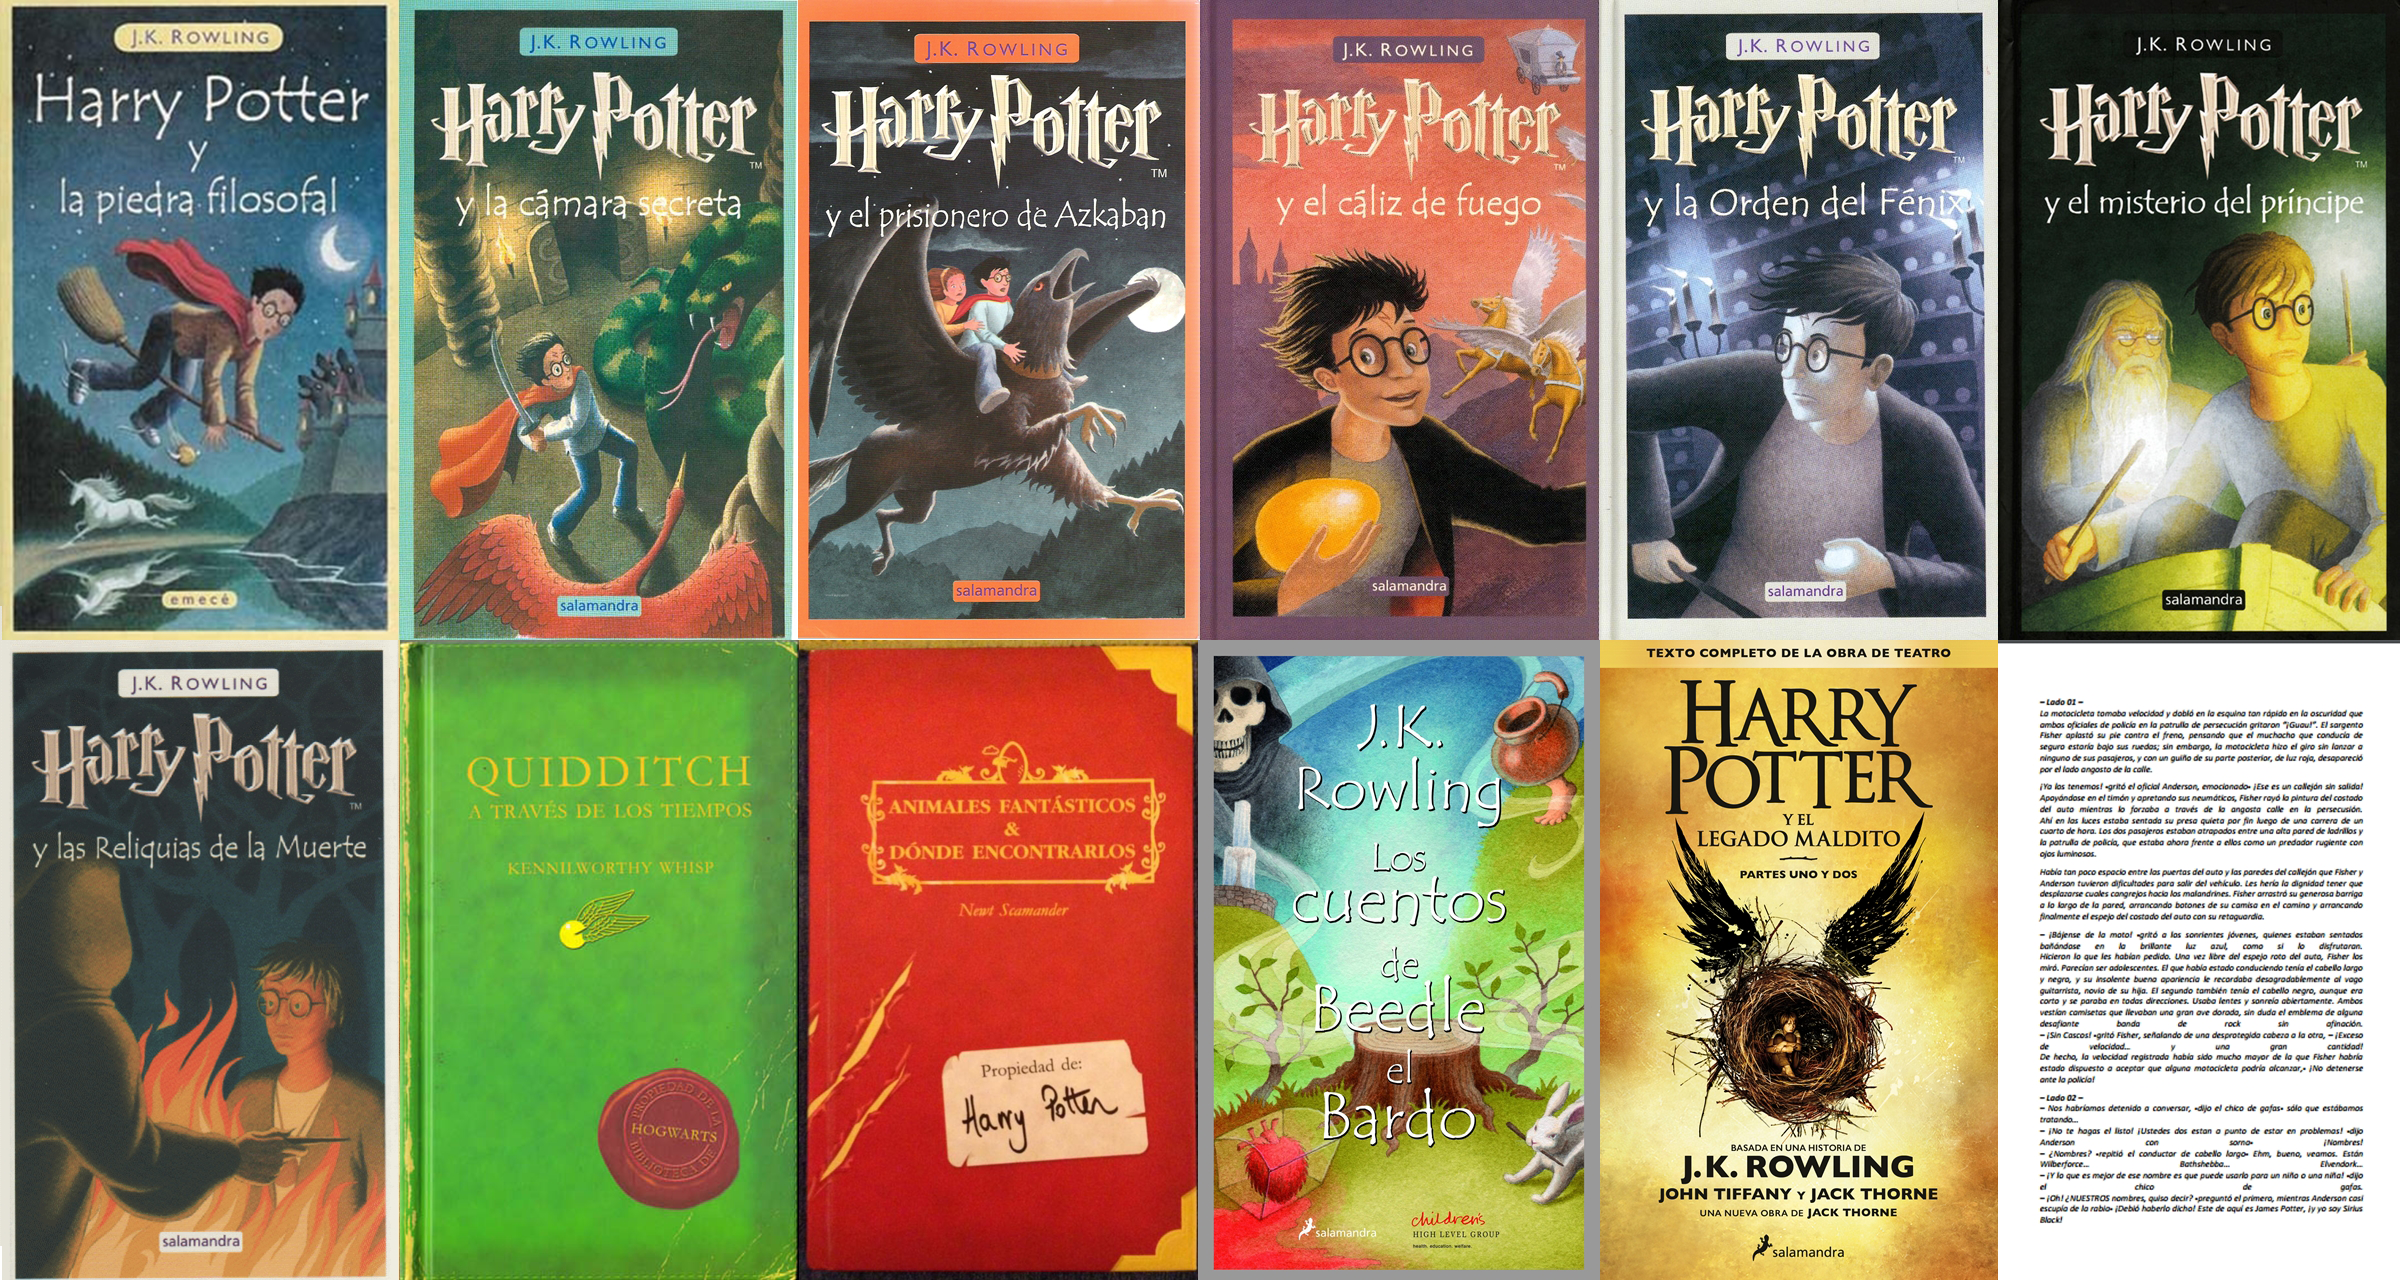 Harry Potter Libros Pdf Coleccion Harry Potter Pdf By Ravdel On Deviantart